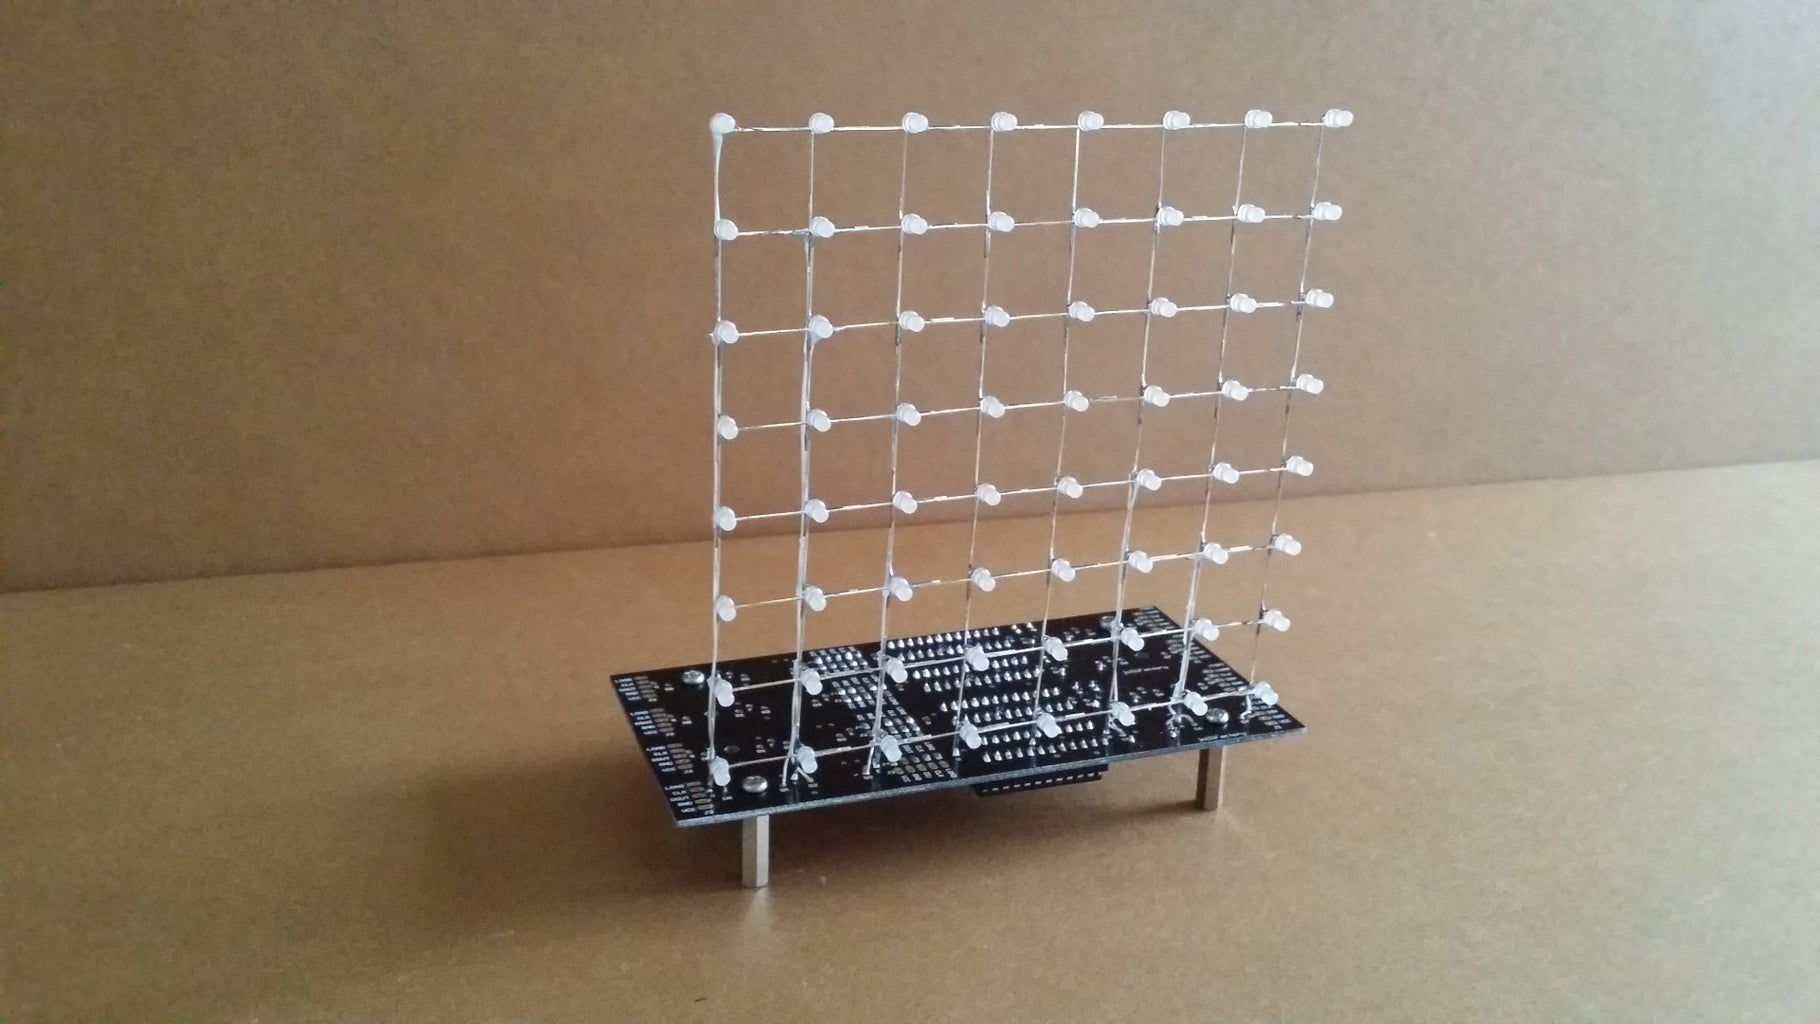 Assembly Part 2 - Complete the LED Cube With Control Circuit